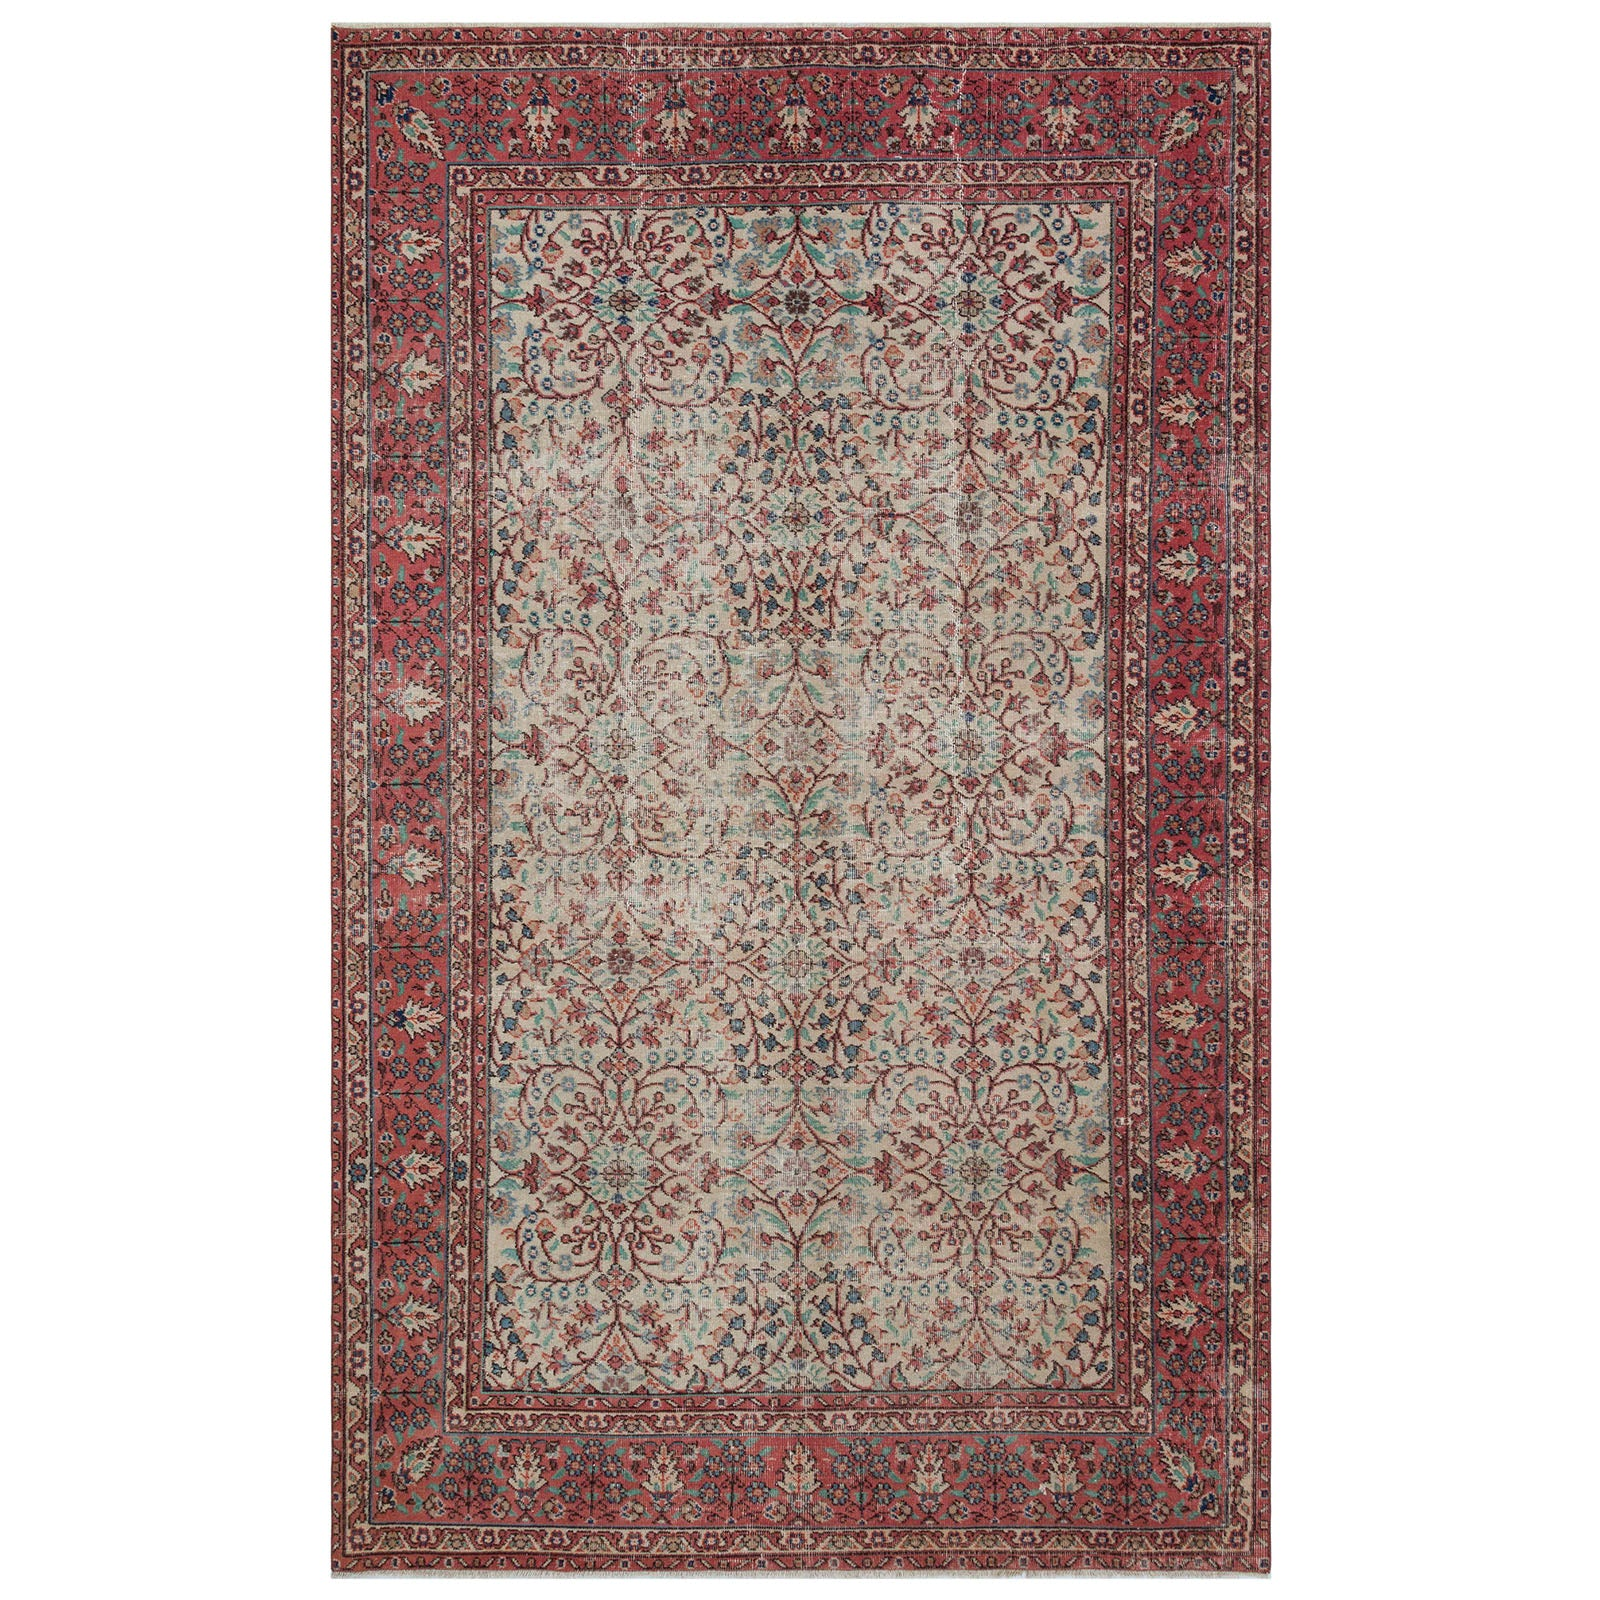 Hali 190X305 CM Bursa Handmade over dyed rug 1743 -  190*305 سجاده بورصة صناعة يدوية على بساط مصبوغ - Shop Online Furniture and Home Decor Store in Dubai, UAE at ebarza